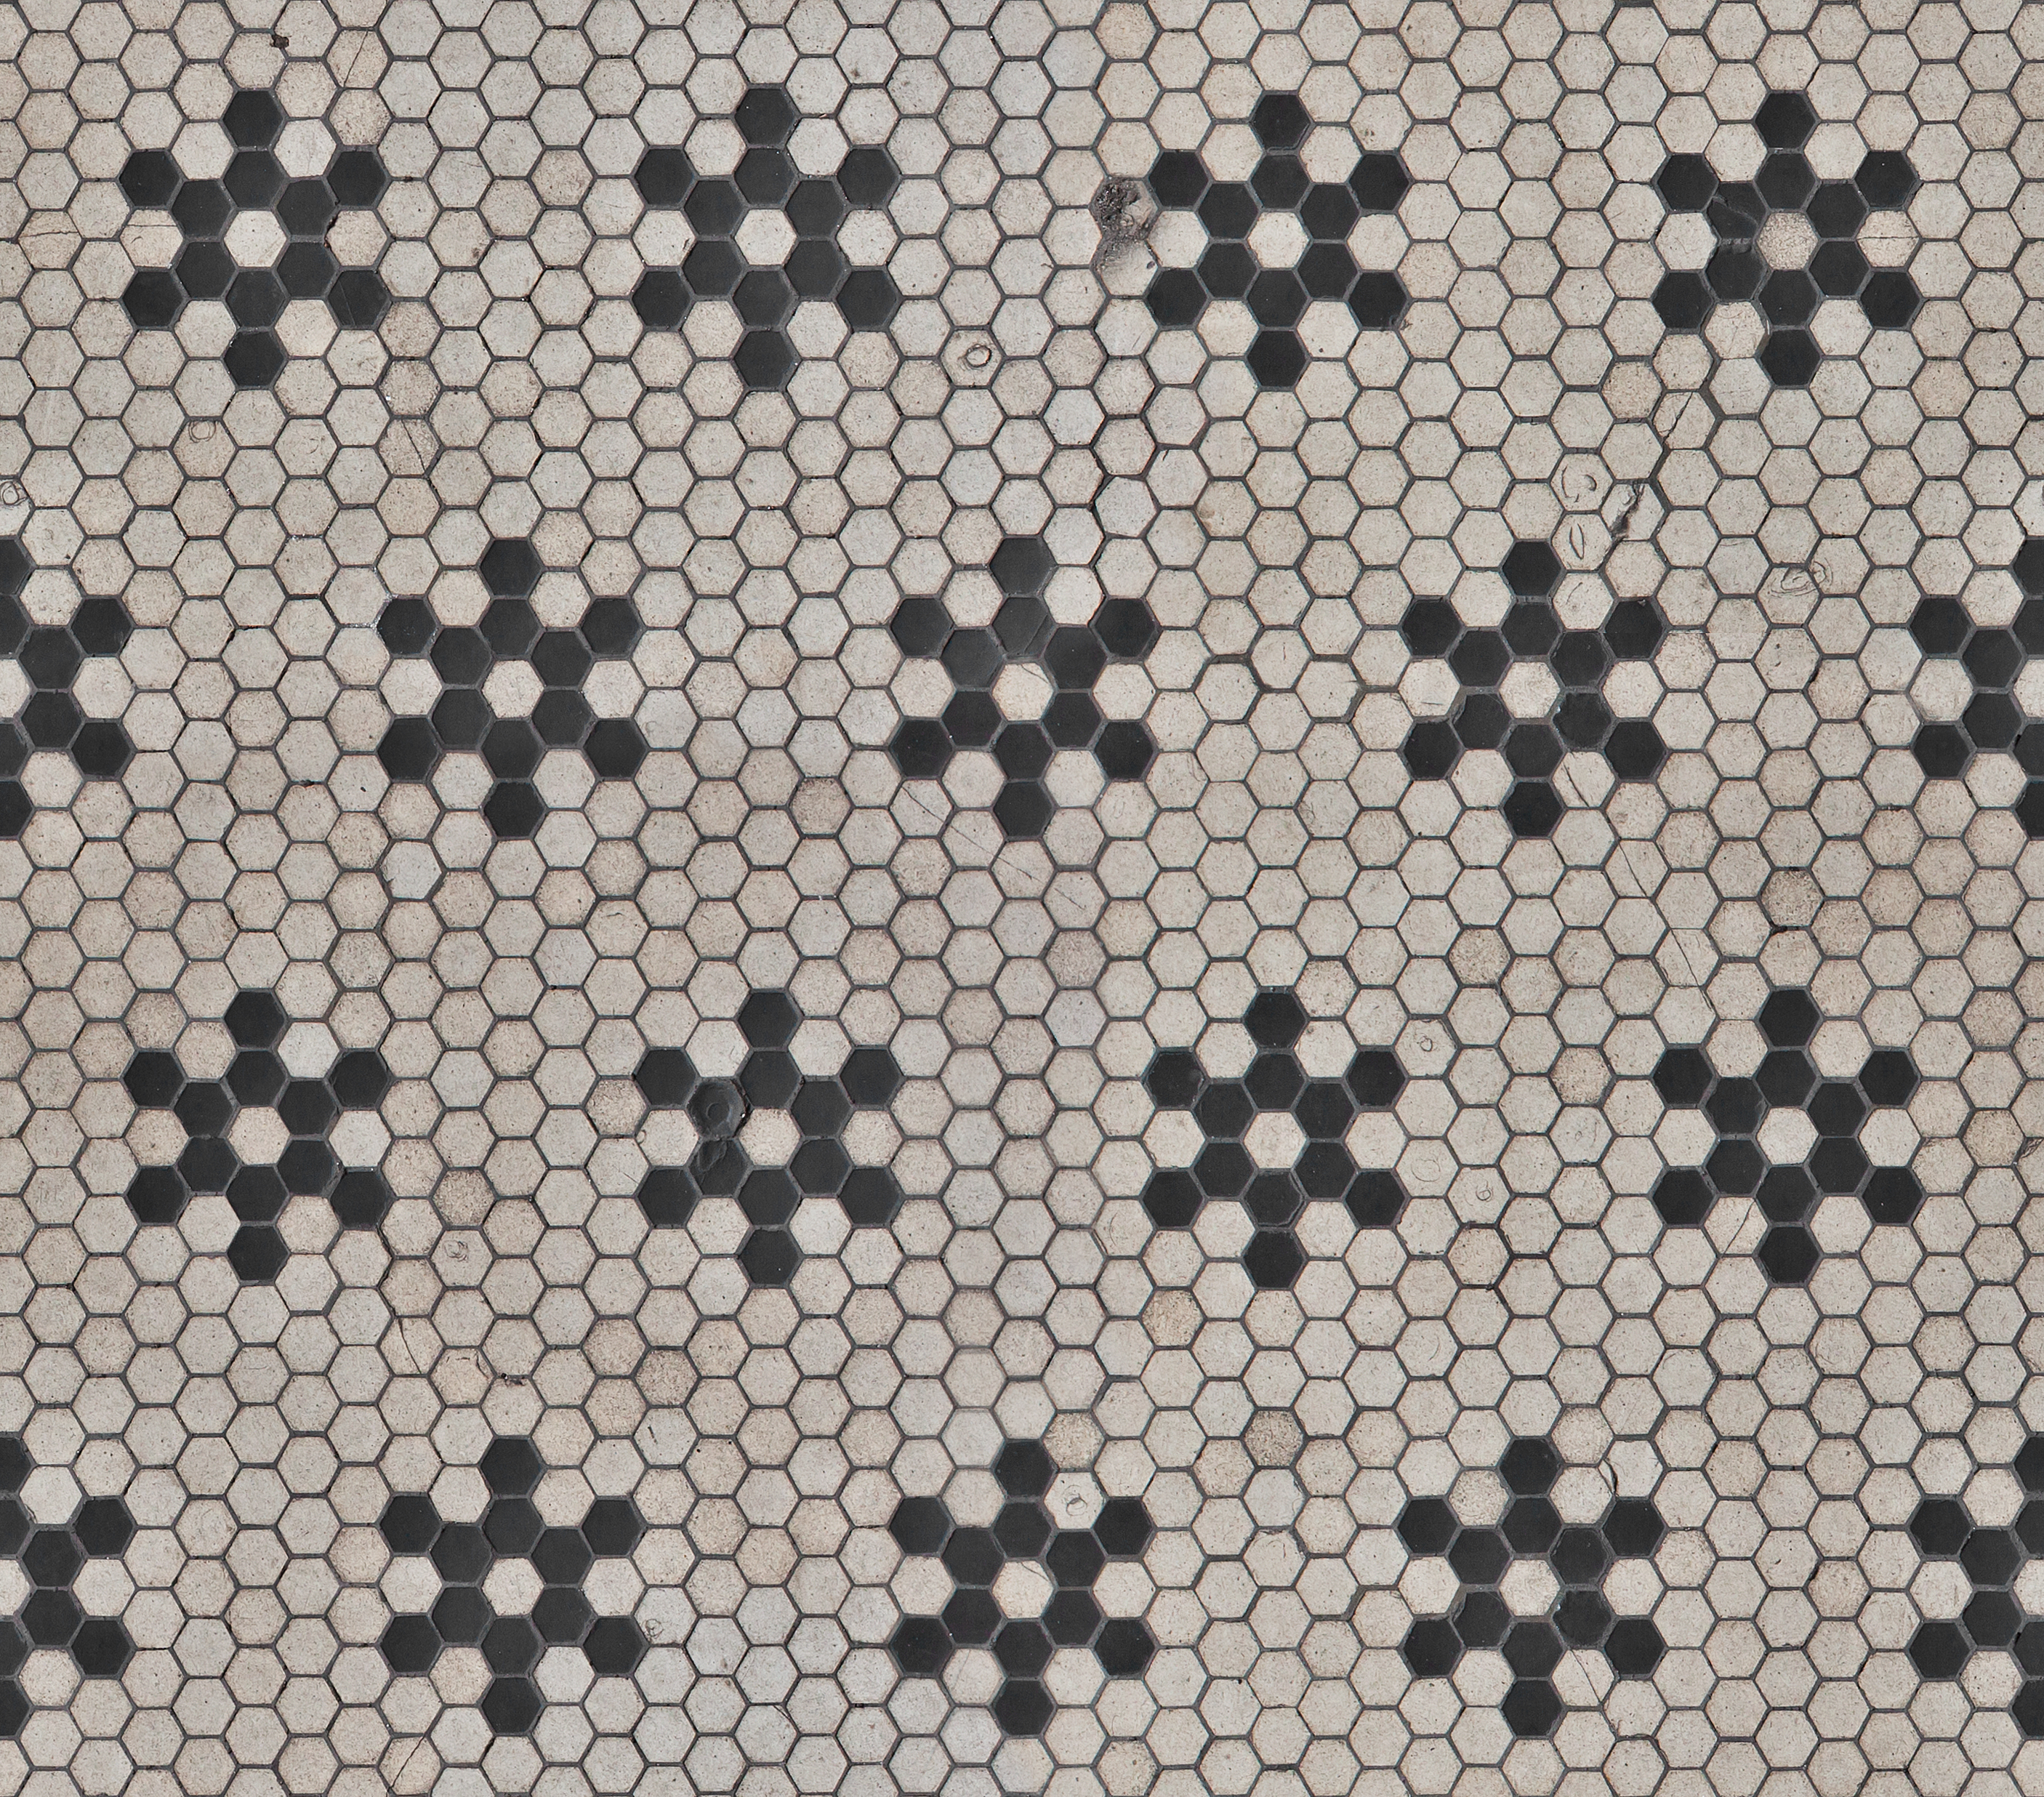 Hexagonal B W Tiles